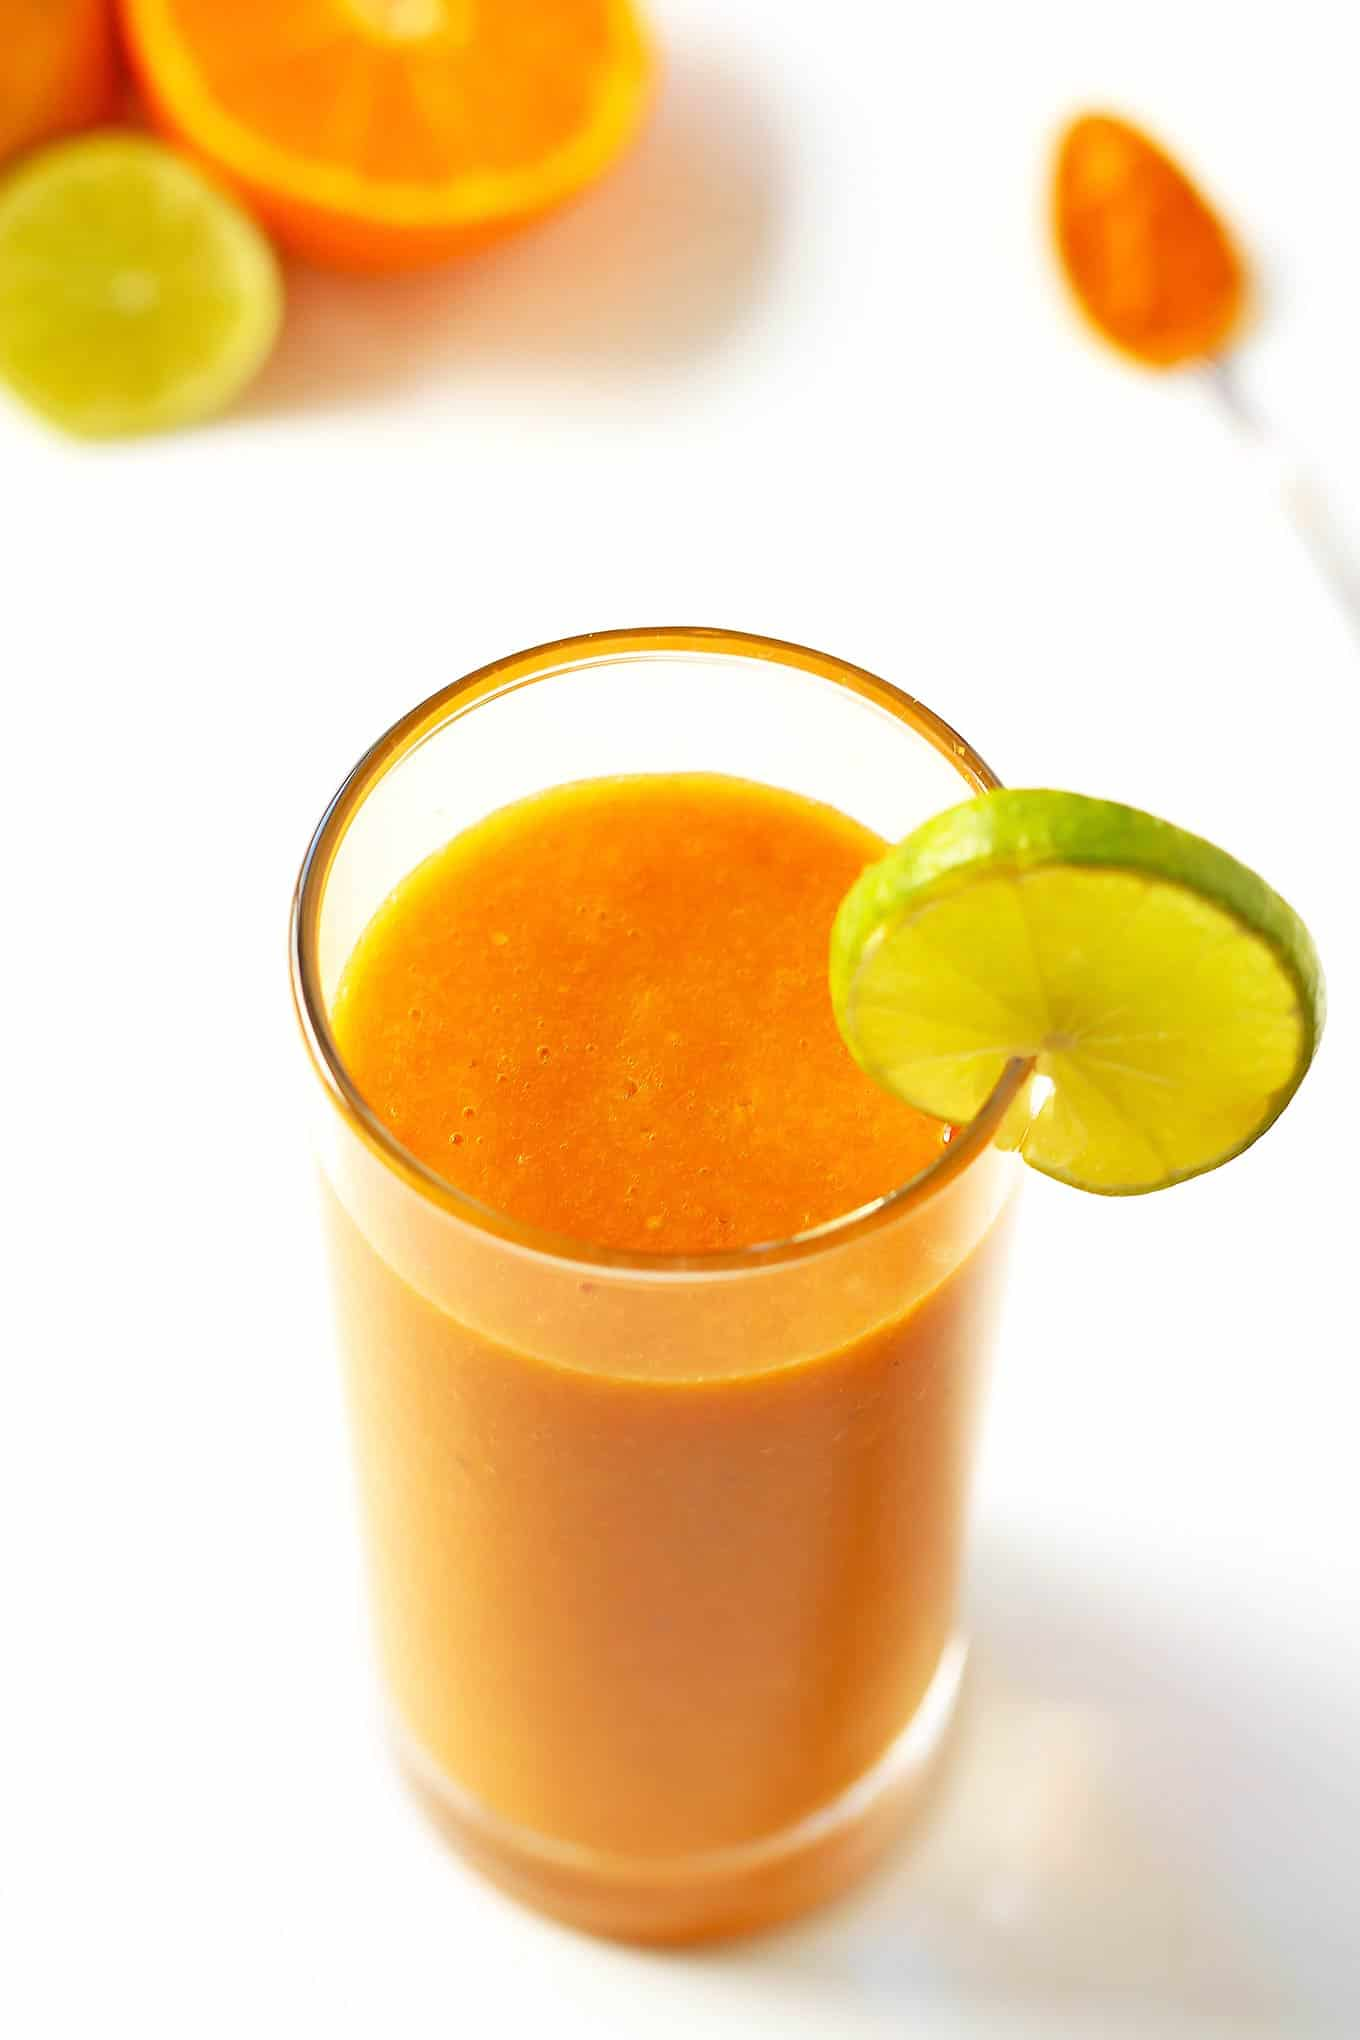 This immune boosting smoothie is made with delicious citrus fruit and carrots. This healthy smoothie recipe is high in antioxidants, vitamin C and A with ginger and turmeric for additional health benefits.